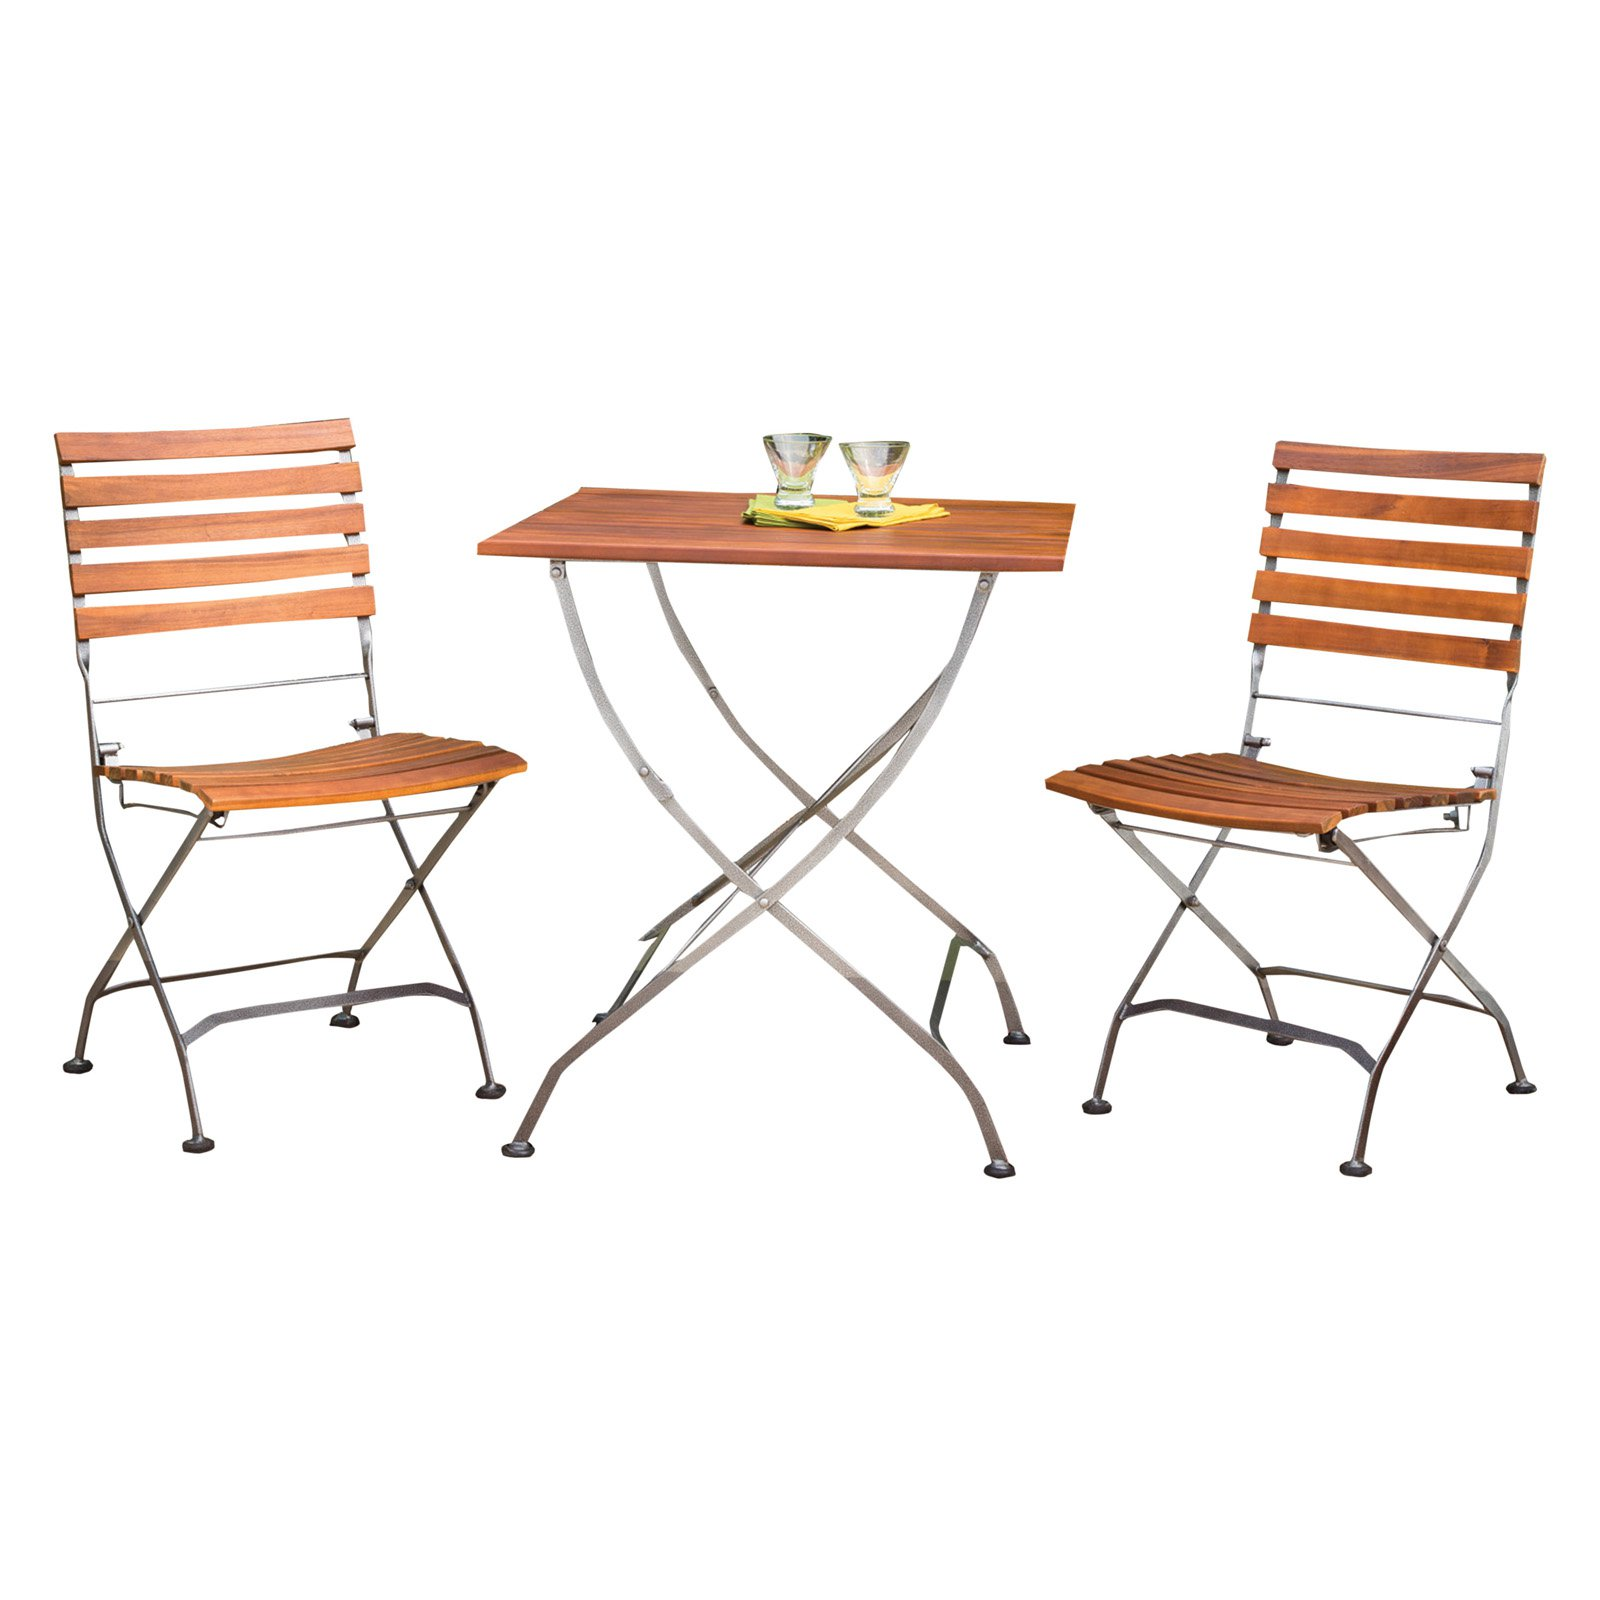 Phat Tommy Galleria 3 Piece Square Folding Patio Bistro Set